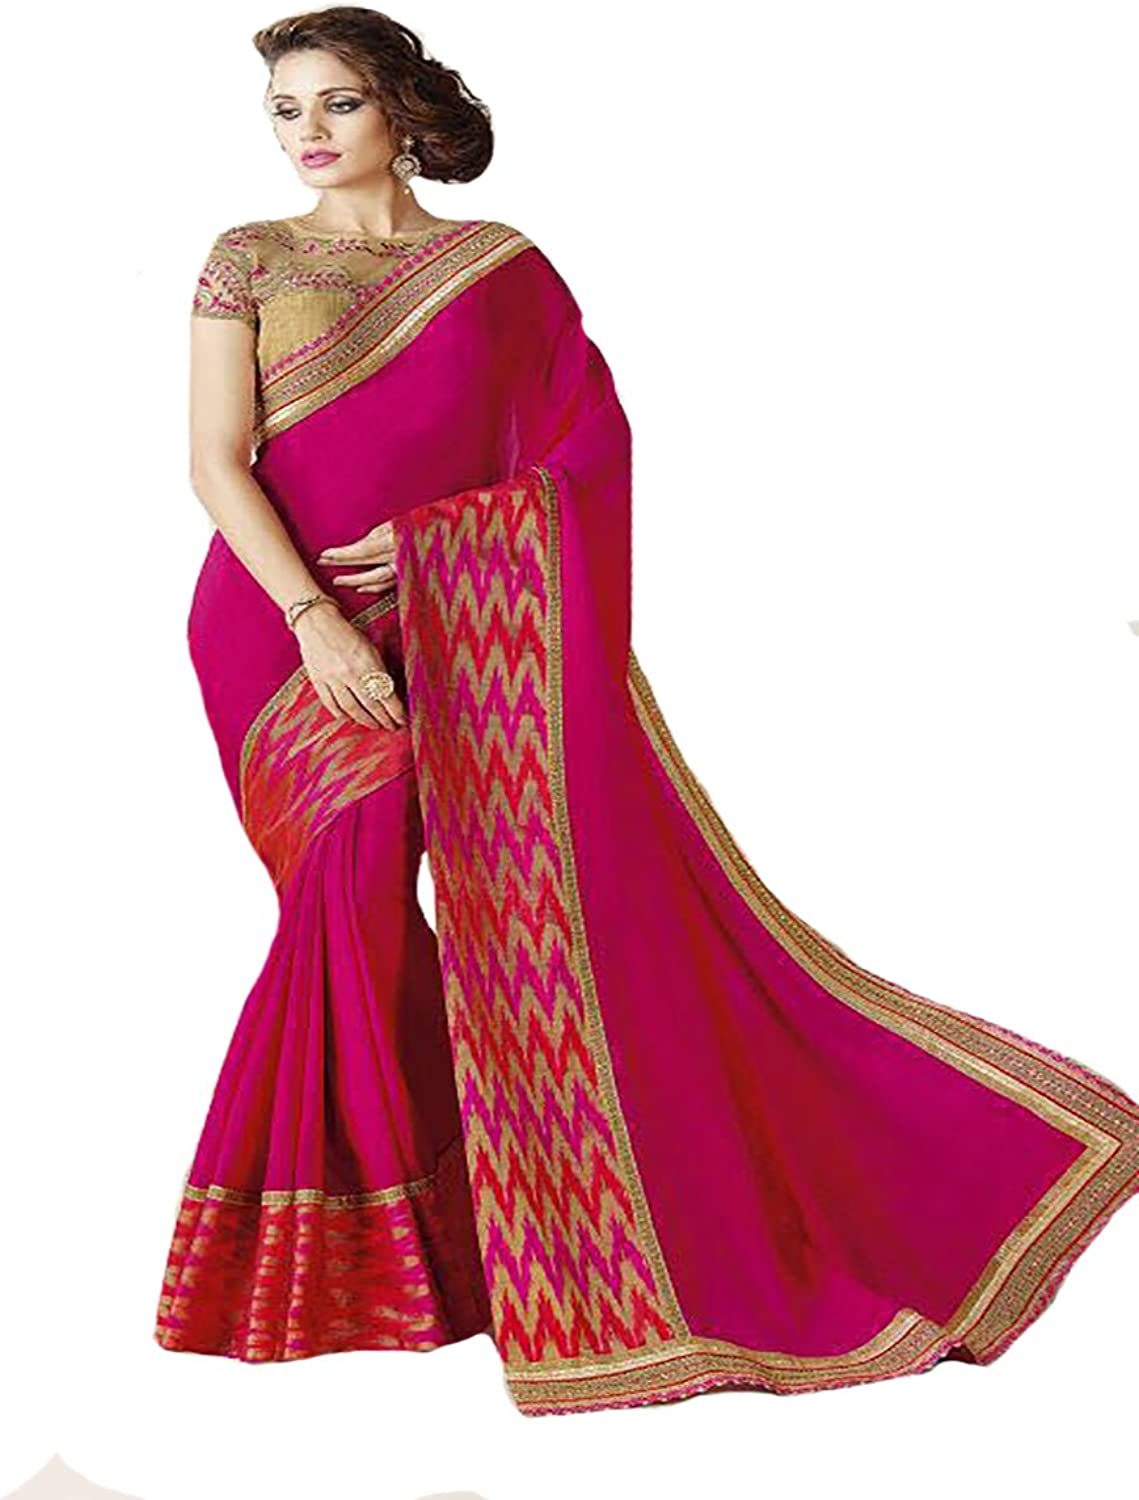 TRADITIONAL DESIGNER STYLISH SAREE SARI WEDDING CEREMONY PARTY WEAR INDIAN MUSLIM WOMEN